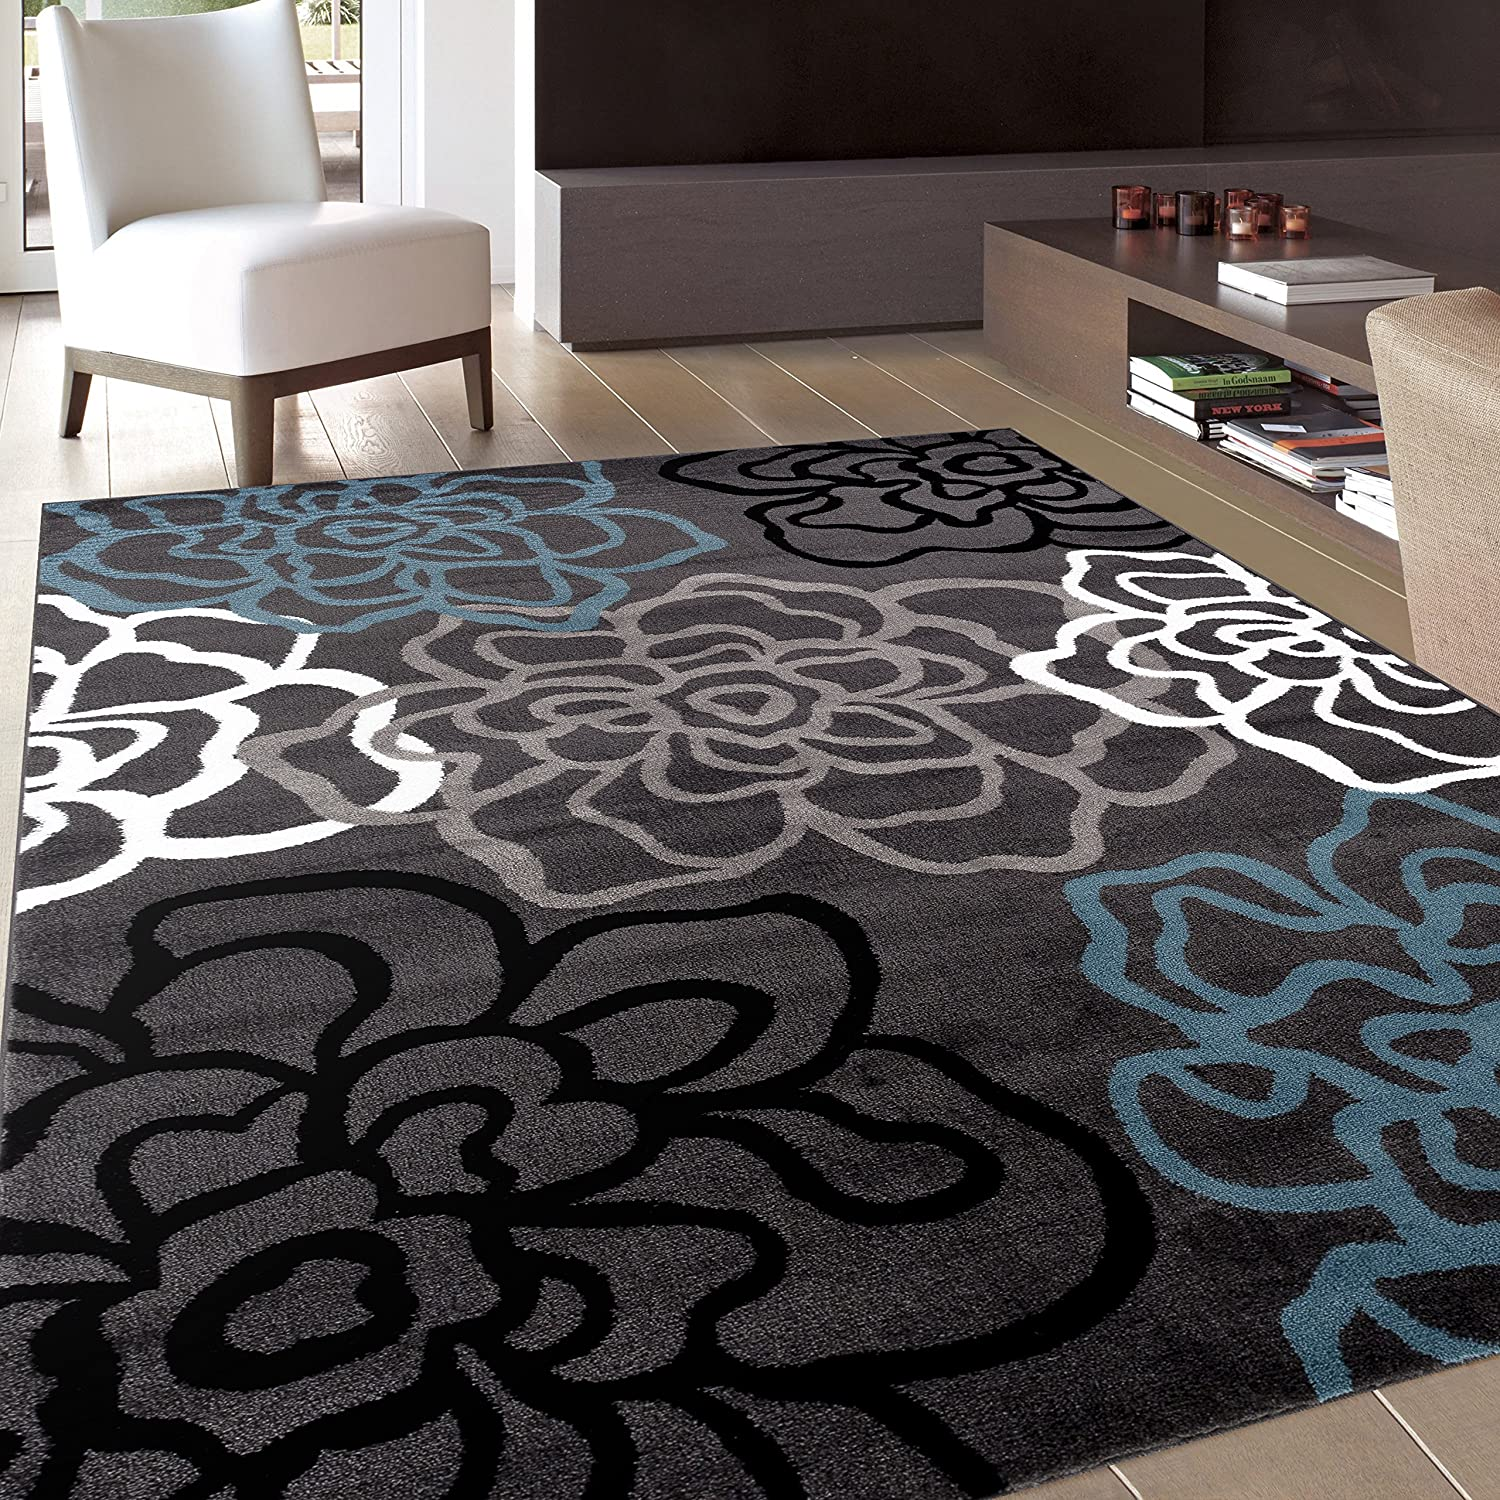 Amazon.com: Rugshop Contemporary Modern Floral Flowers Area Rug, 7\' 10